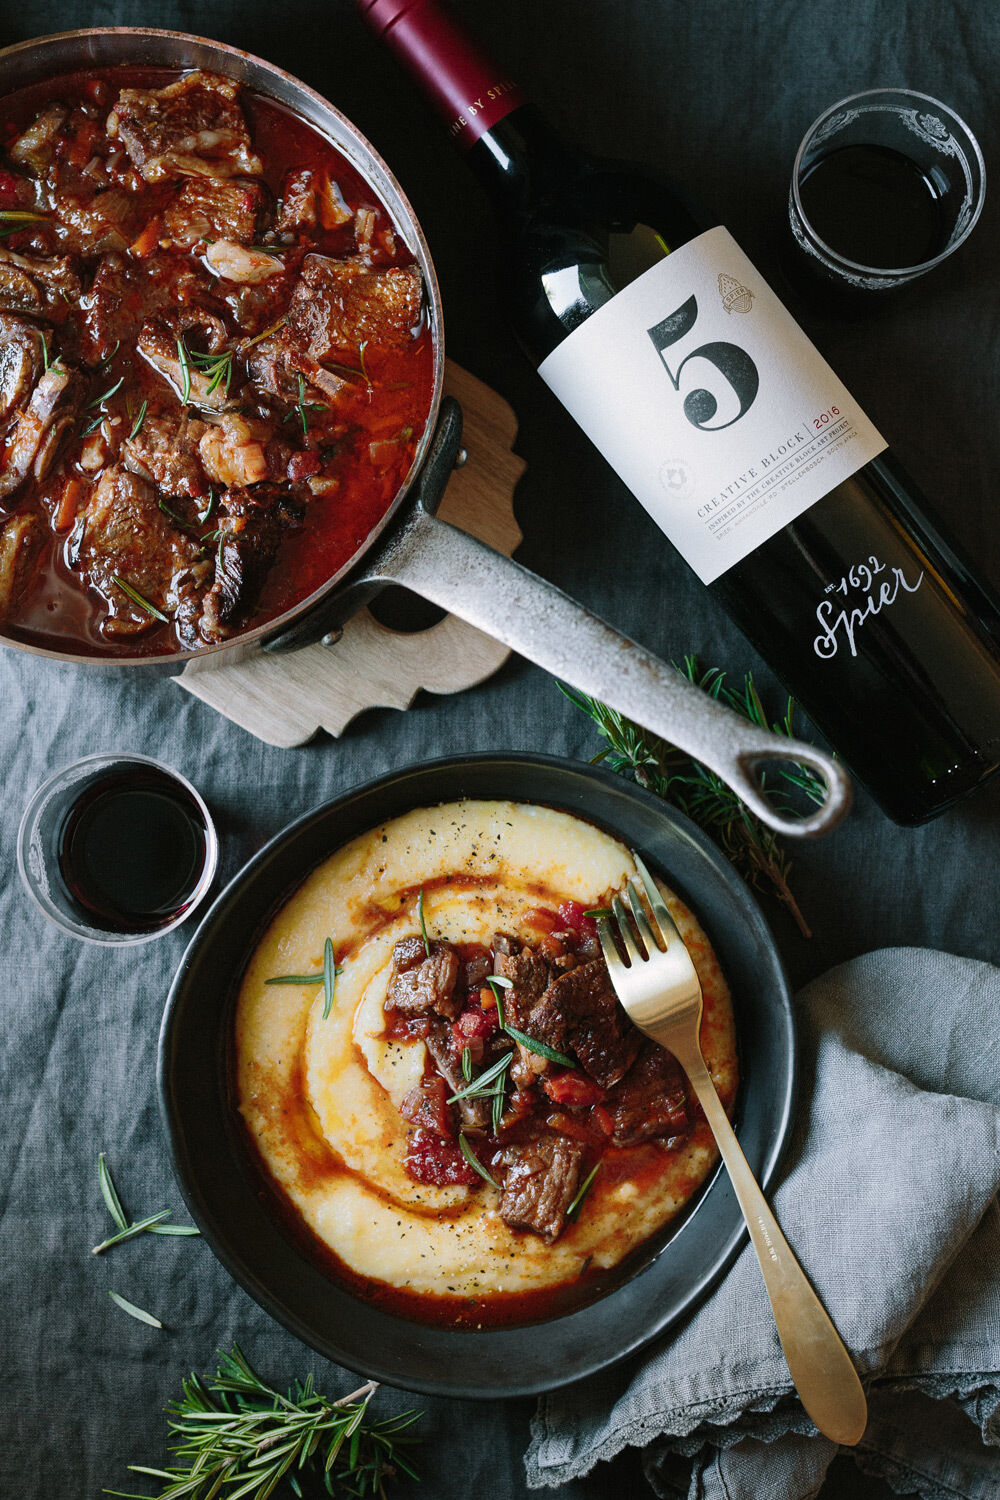 Slow roasted beef short rib casserole with creamy polenta